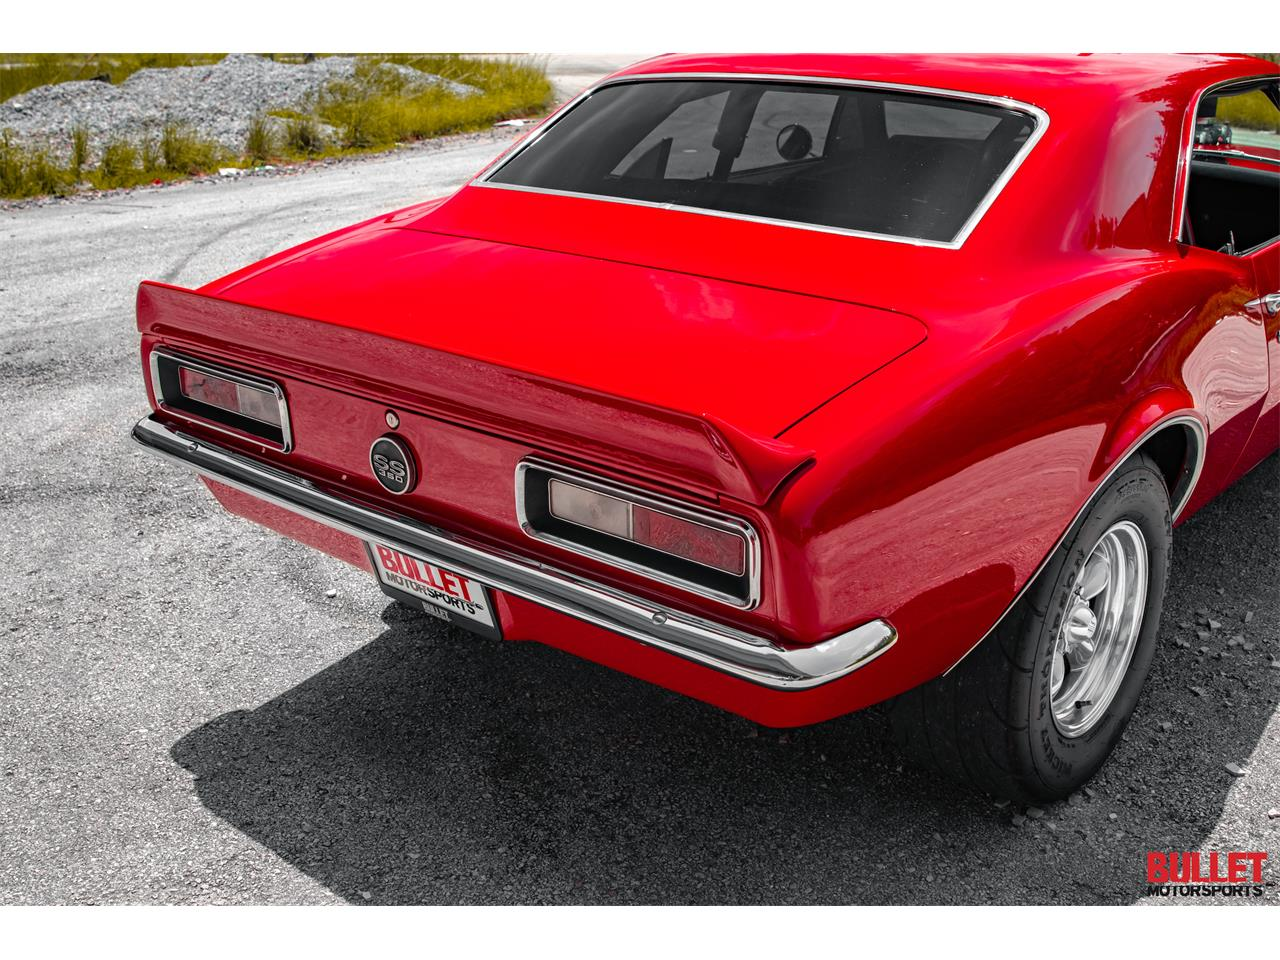 Large Picture of Classic '67 Camaro - $49,950.00 Offered by Bullet Motorsports Inc - QIJZ